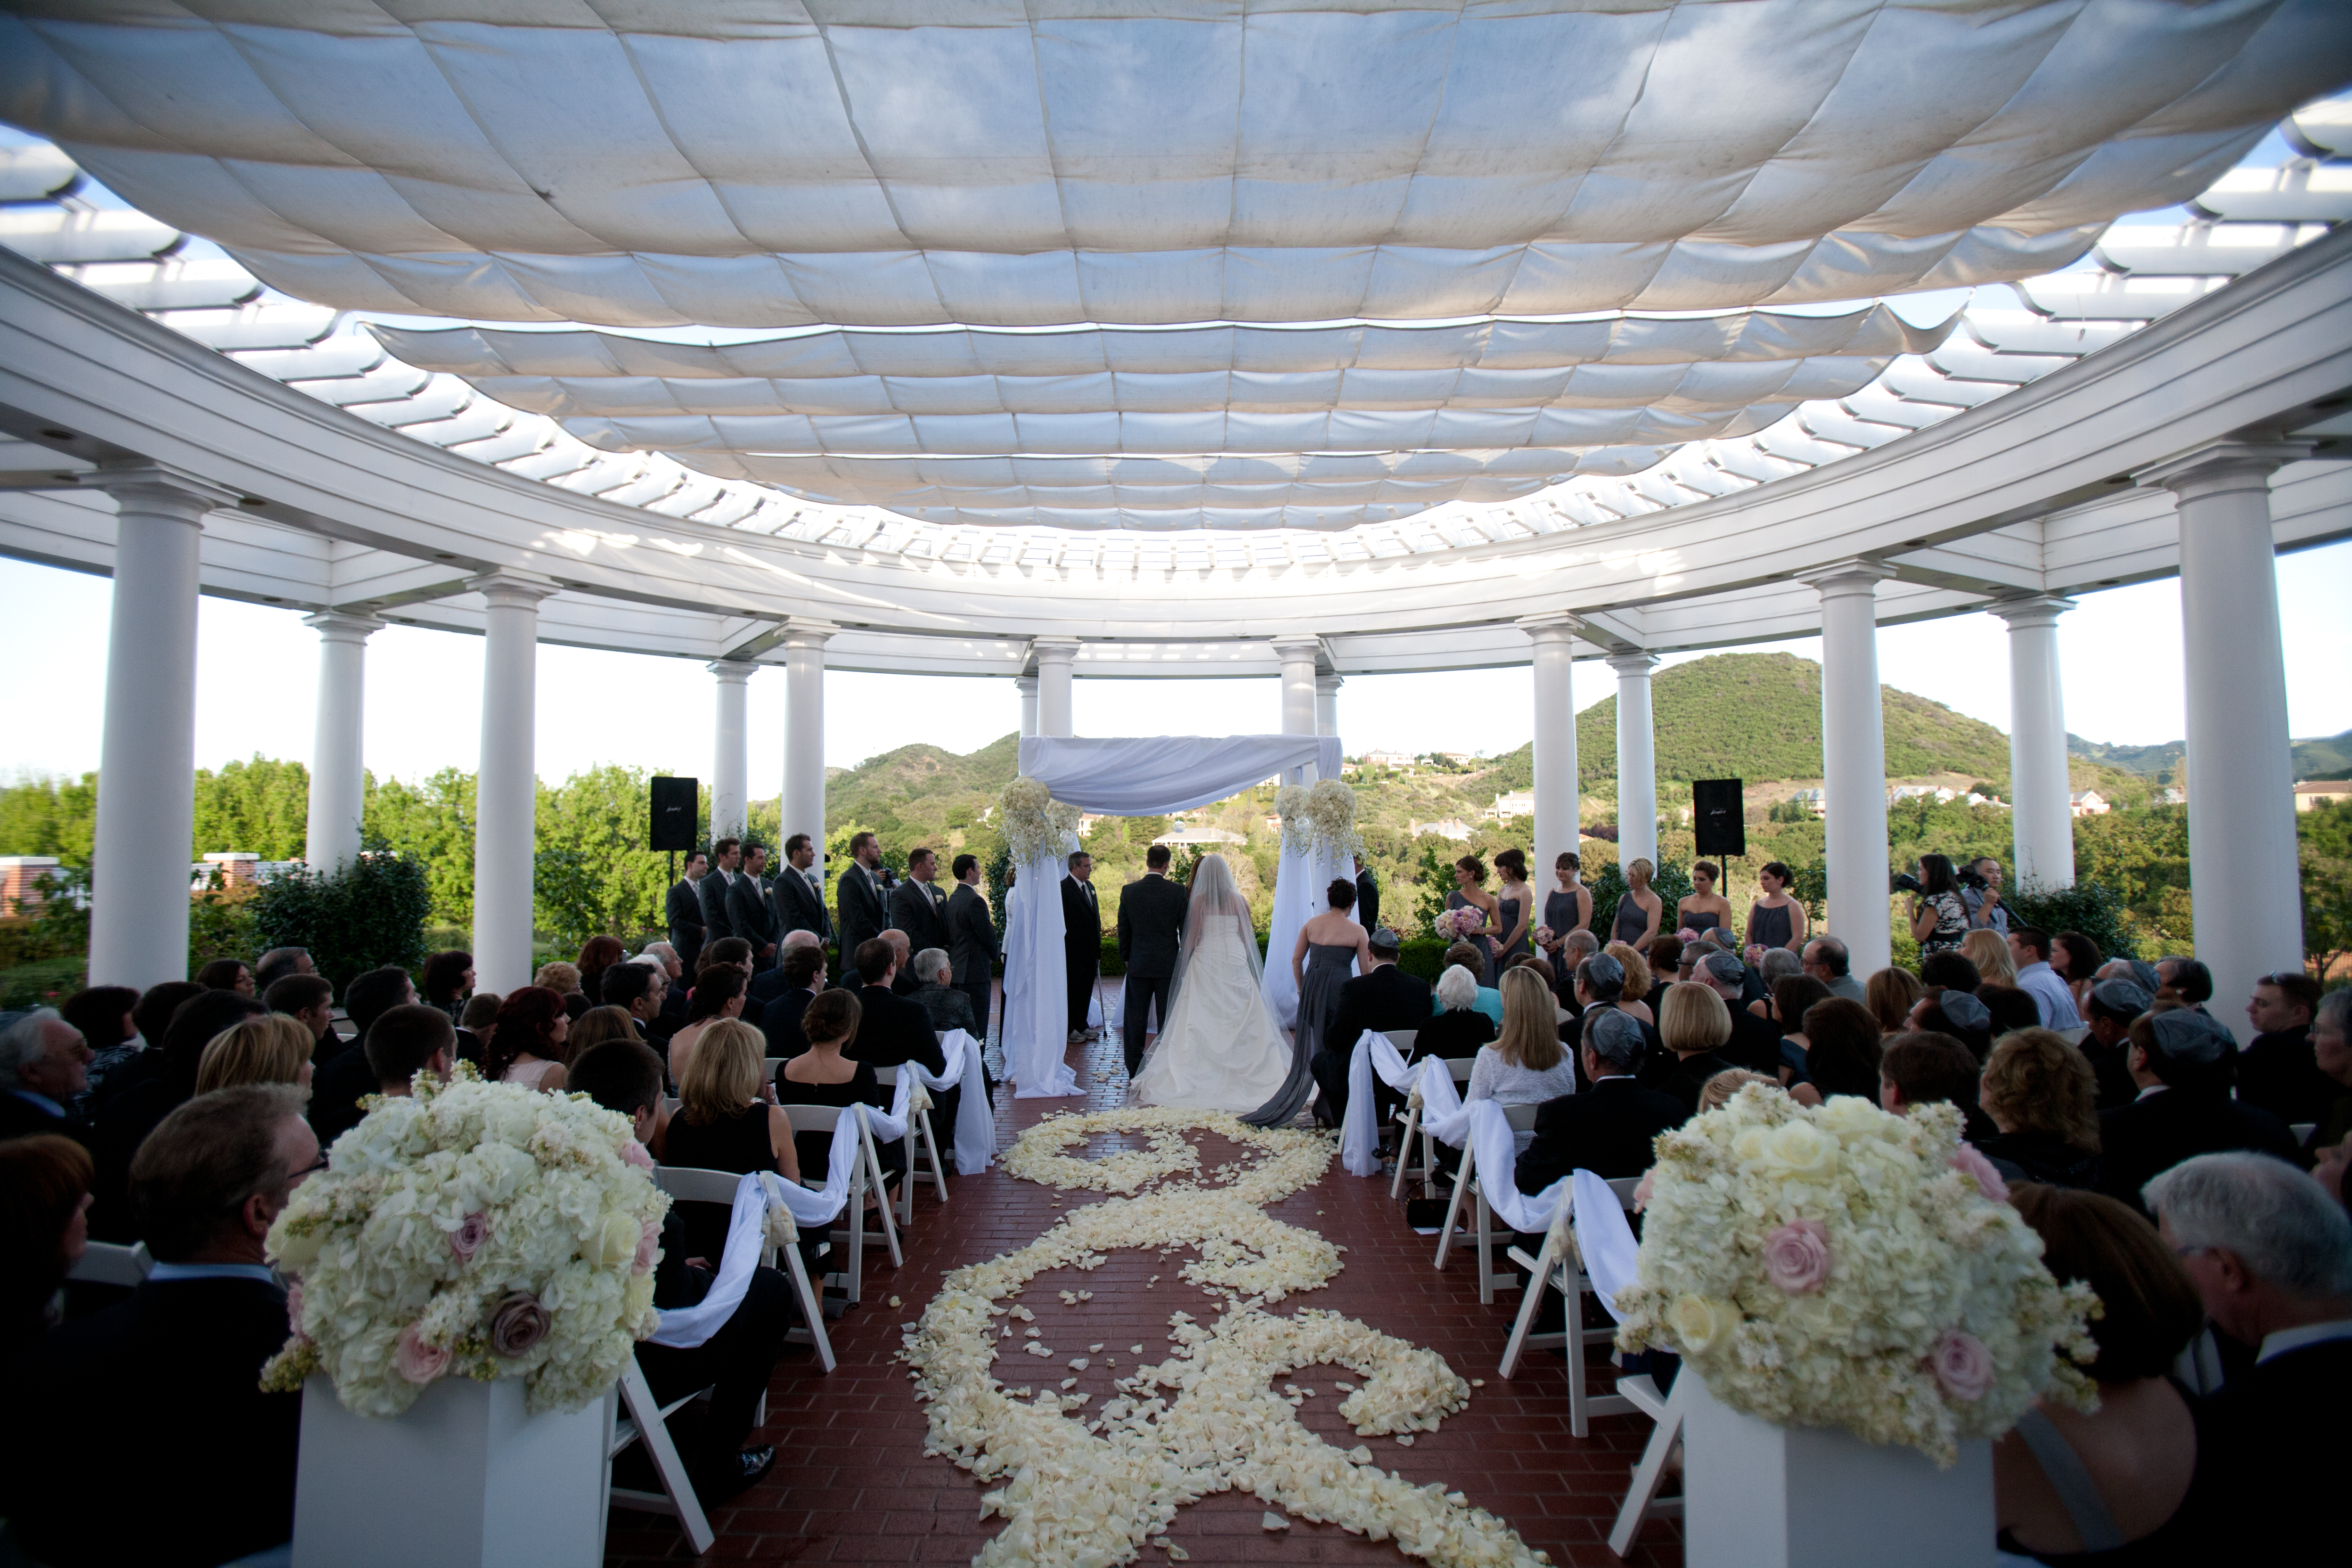 ... Katz & James Milkovich at Sherwood Country Club - Lisa Kahn Events